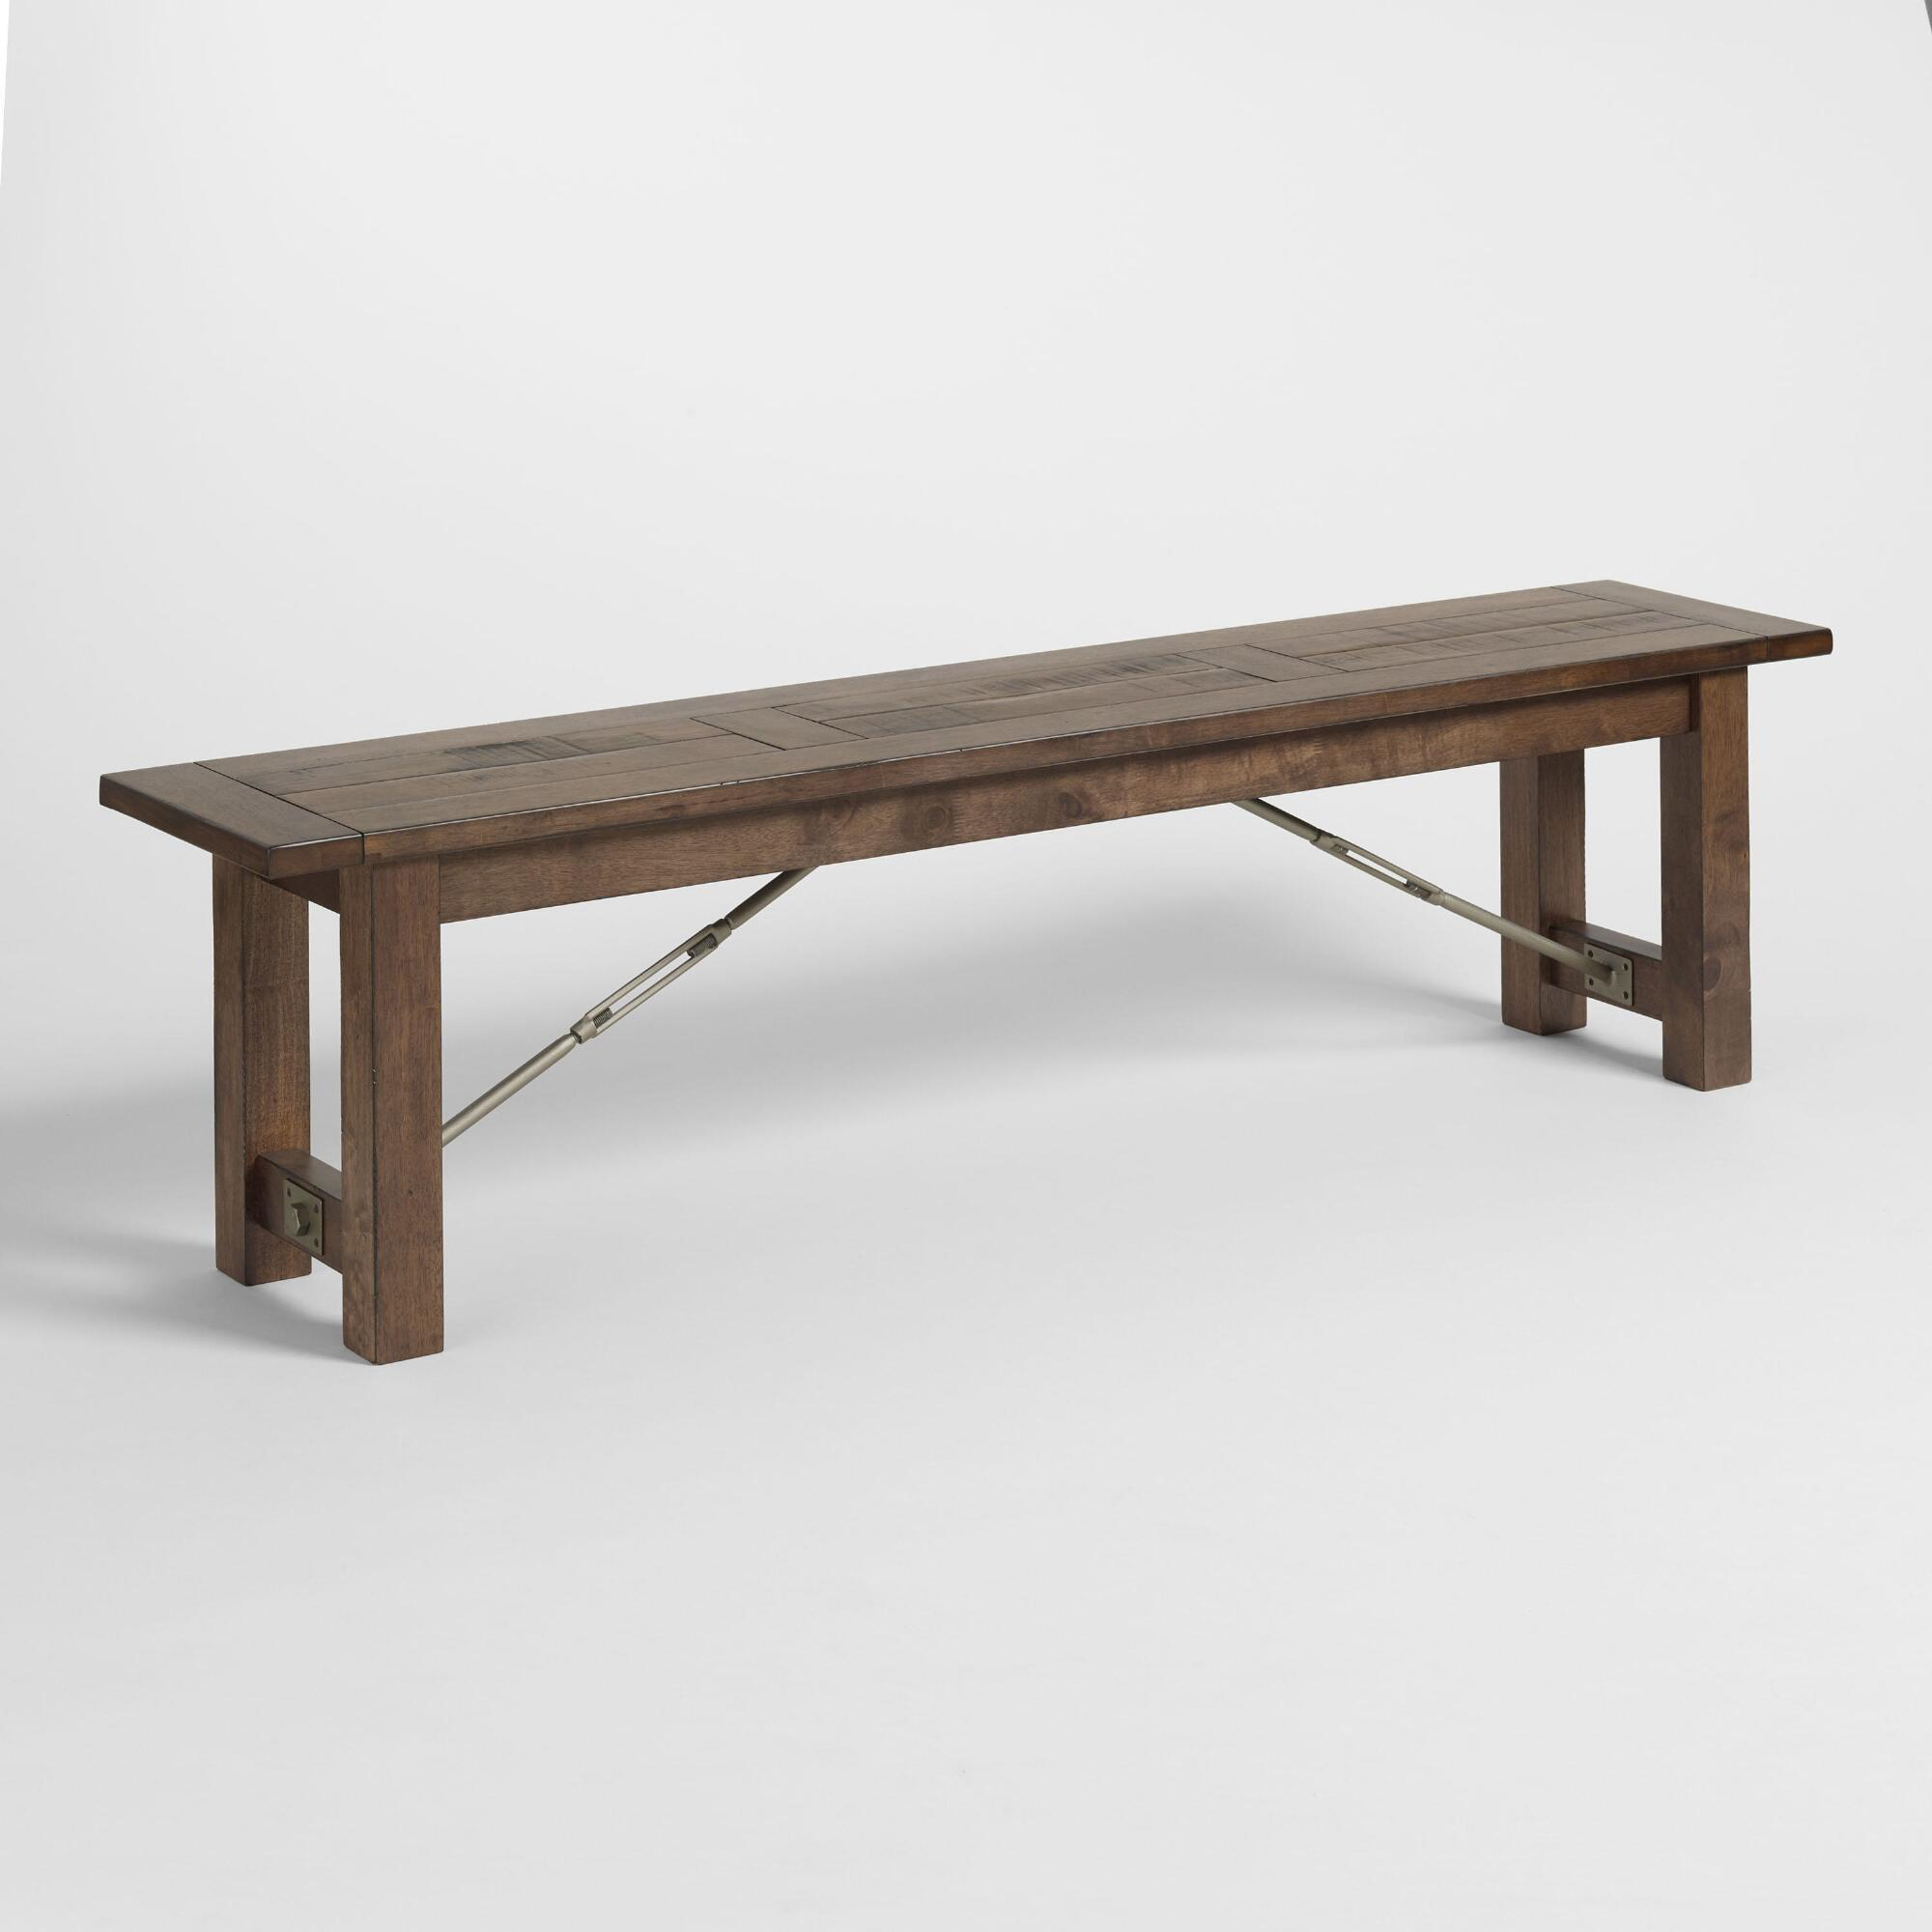 Bedroom benches with backs - Wood Garner Dining Bench